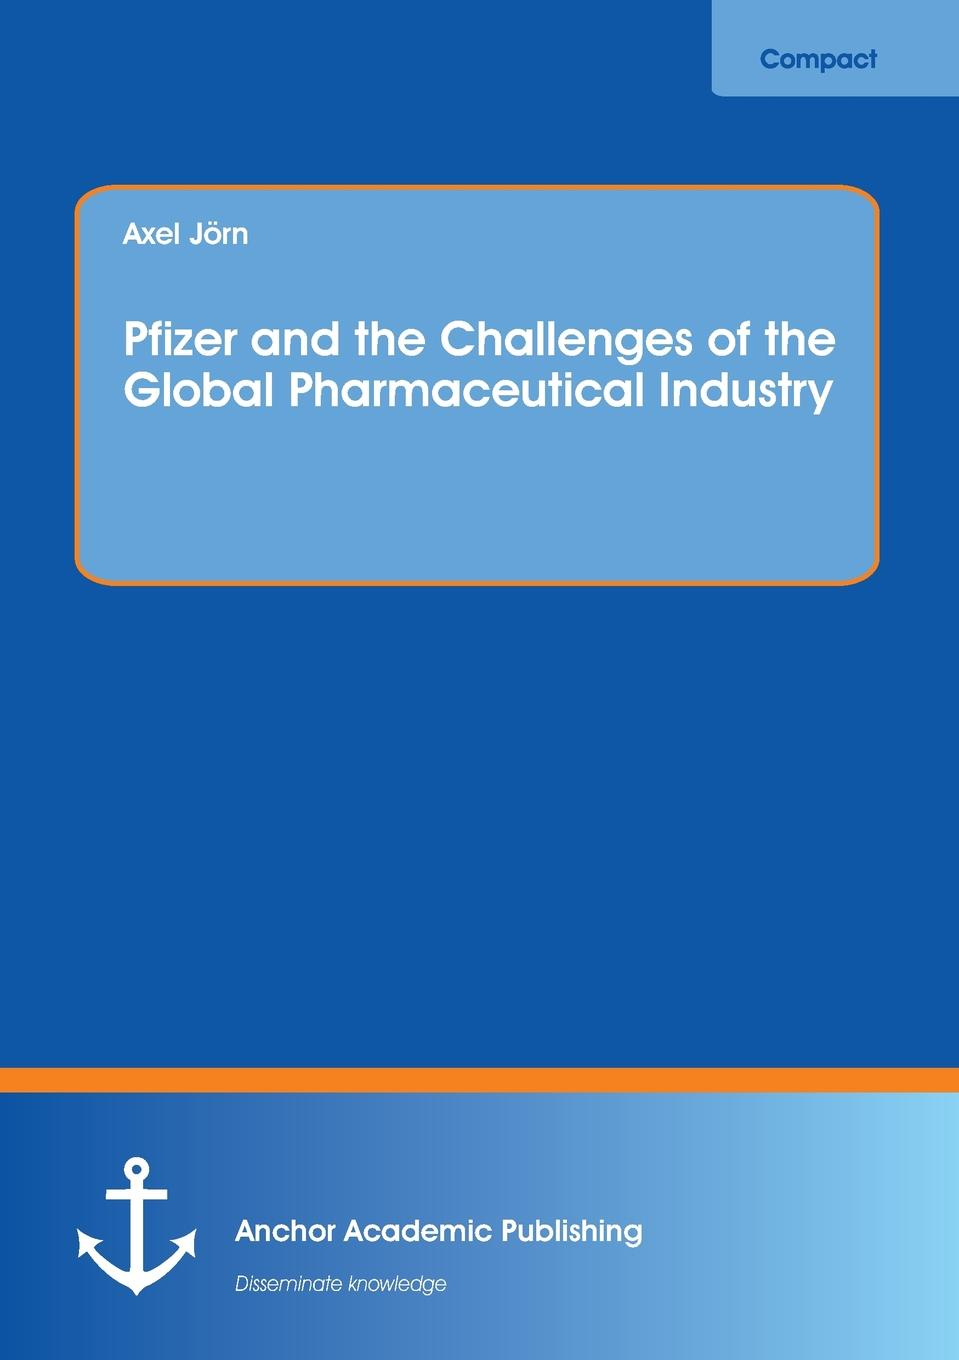 Axel Jörn Pfizer and the Challenges of the Global Pharmaceutical Industry 1 25 sanitary stainless steel ss304 y type filter strainer f beer dairy pharmaceutical beverag chemical industry